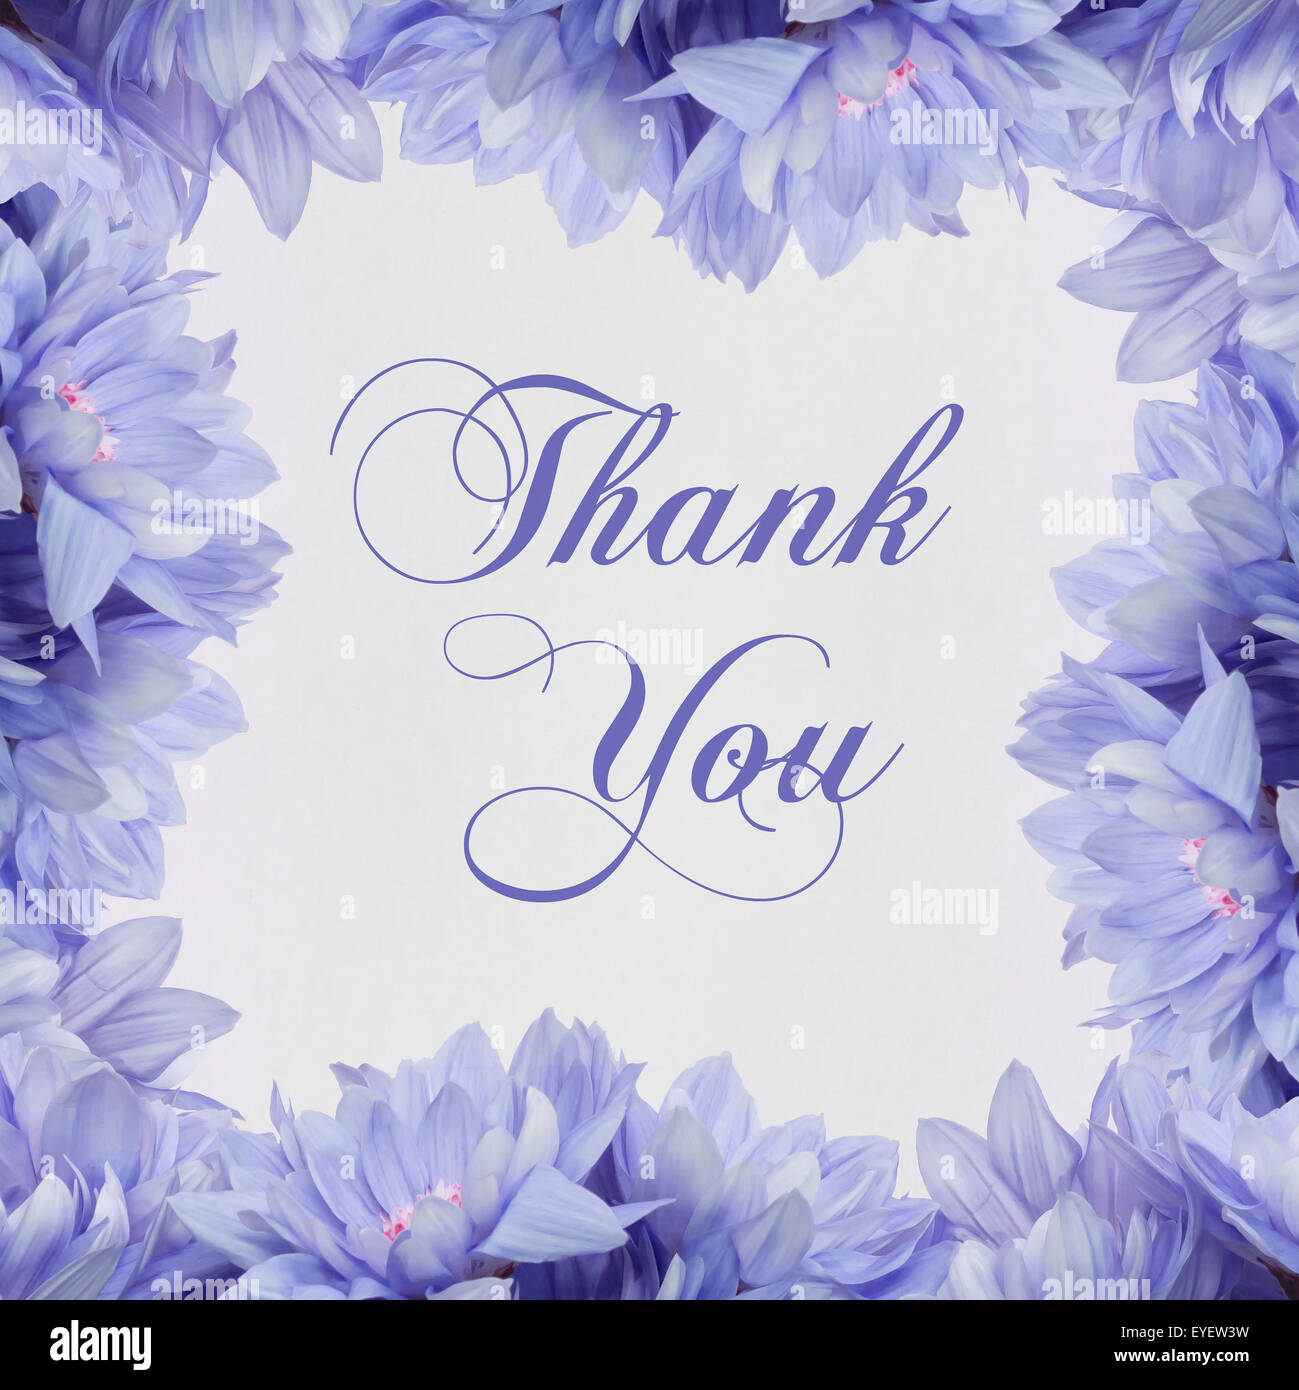 Beautiful Flower Thank You: Thank You , Flowers And Beautiful Handwriting Greeting